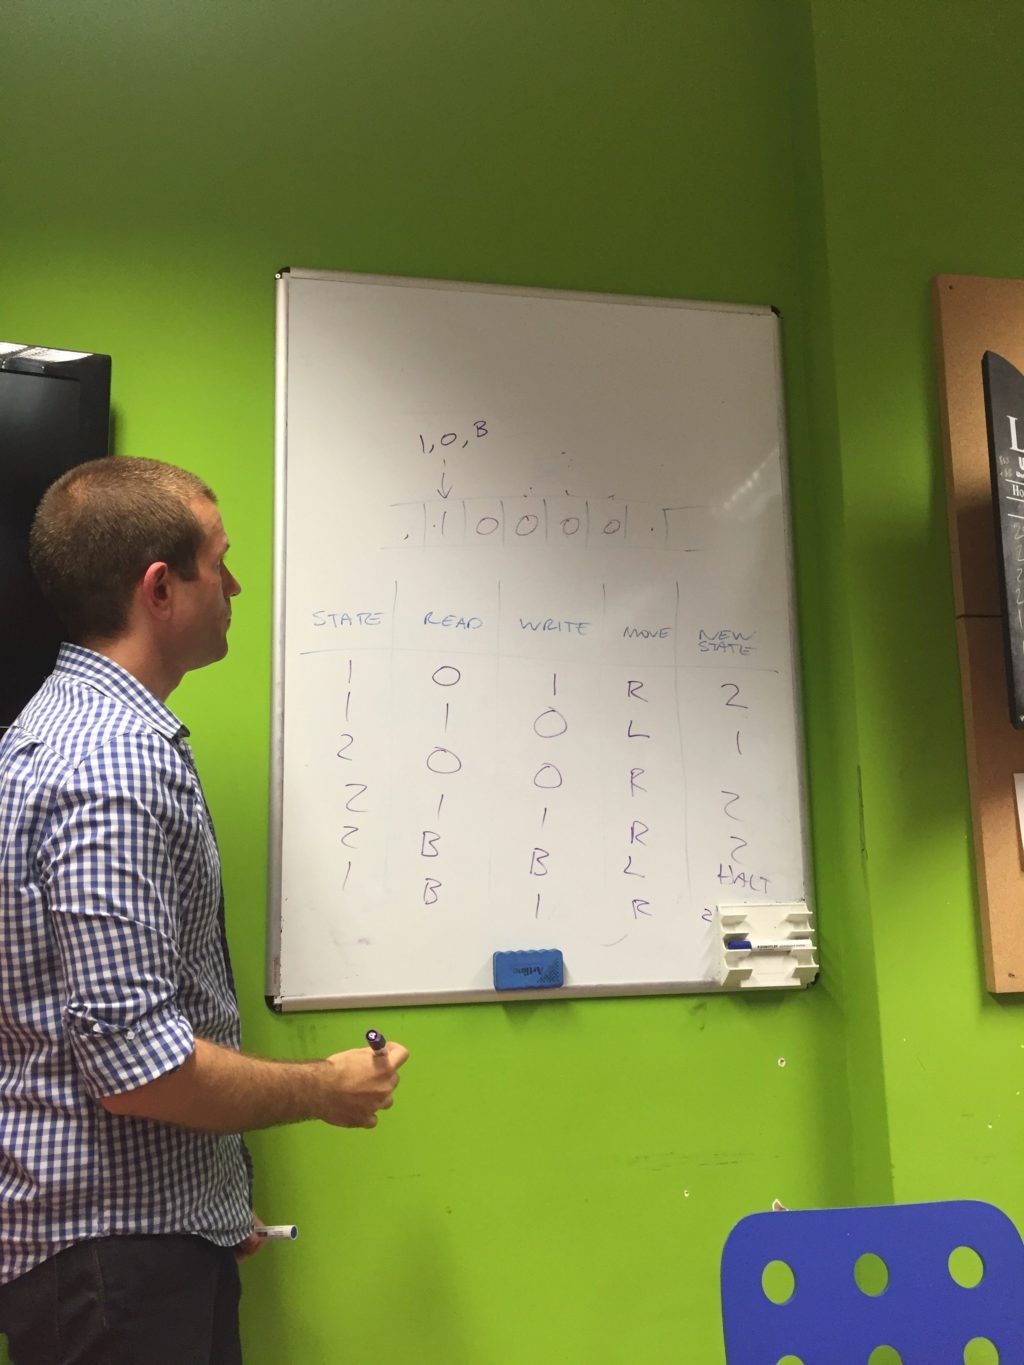 Tom explaining Turing Machines by writing a program to increment a binary number